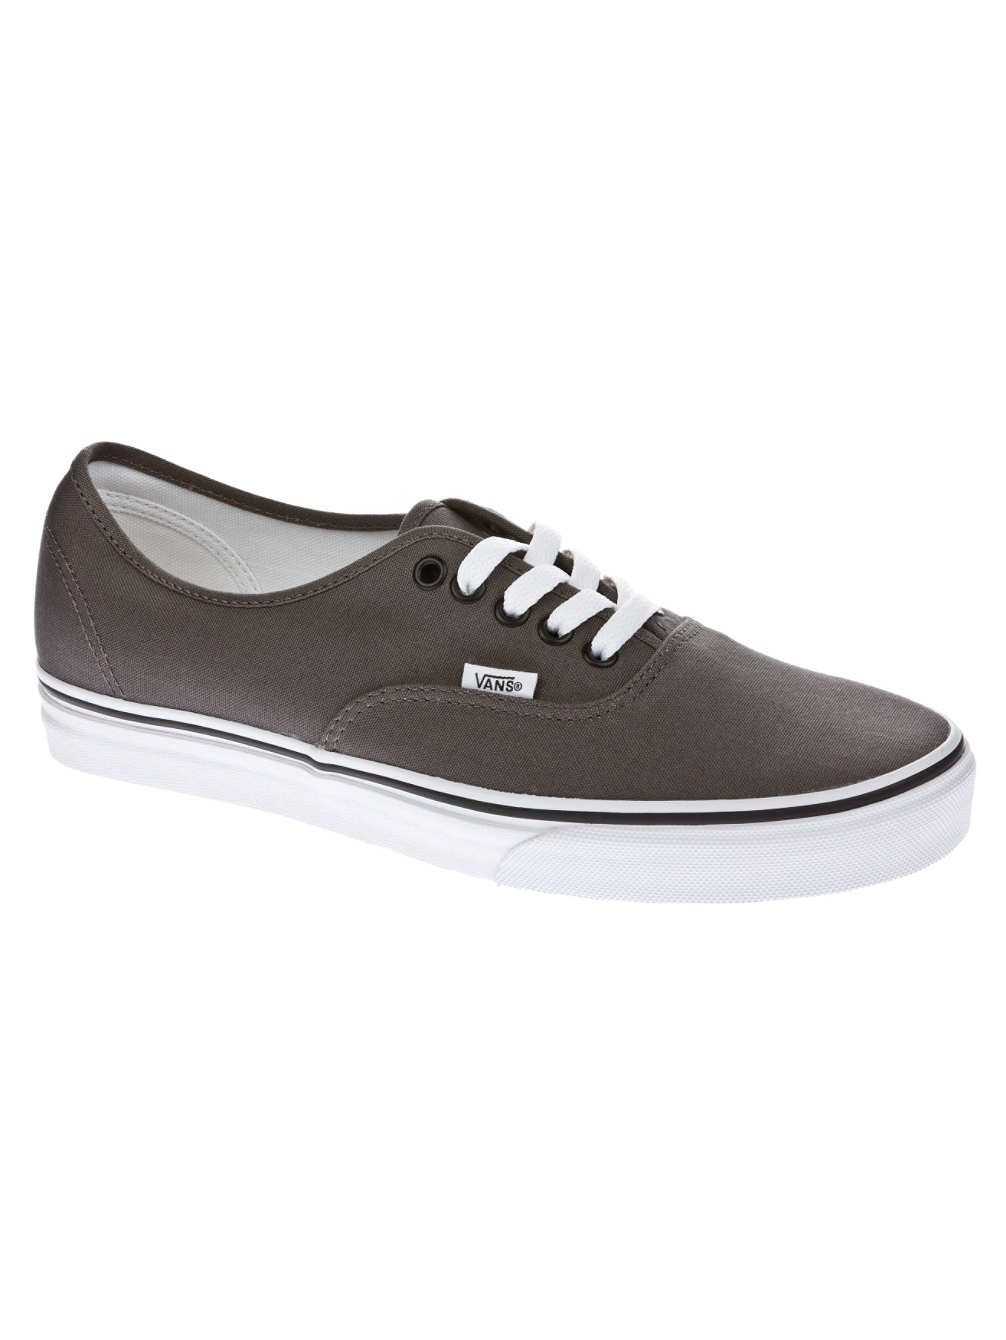 Vans Herren Authentic Core Classic Sneakers B00U6P9G6S 11|Pewterblack